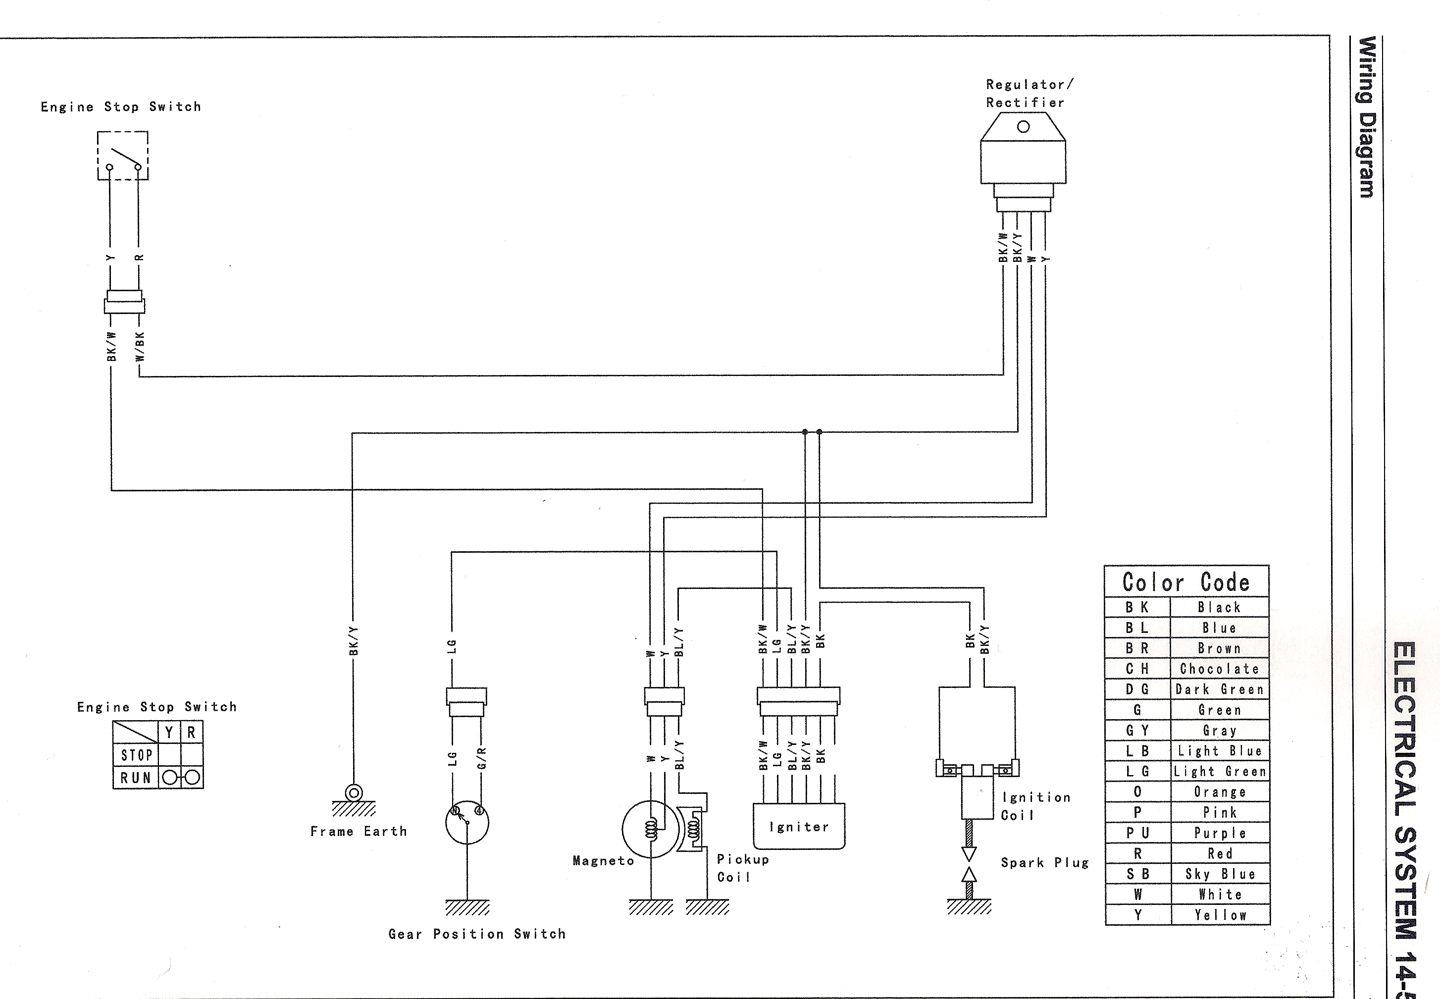 Click image for larger version. Name: Service Manual KLX110-A1-205A.